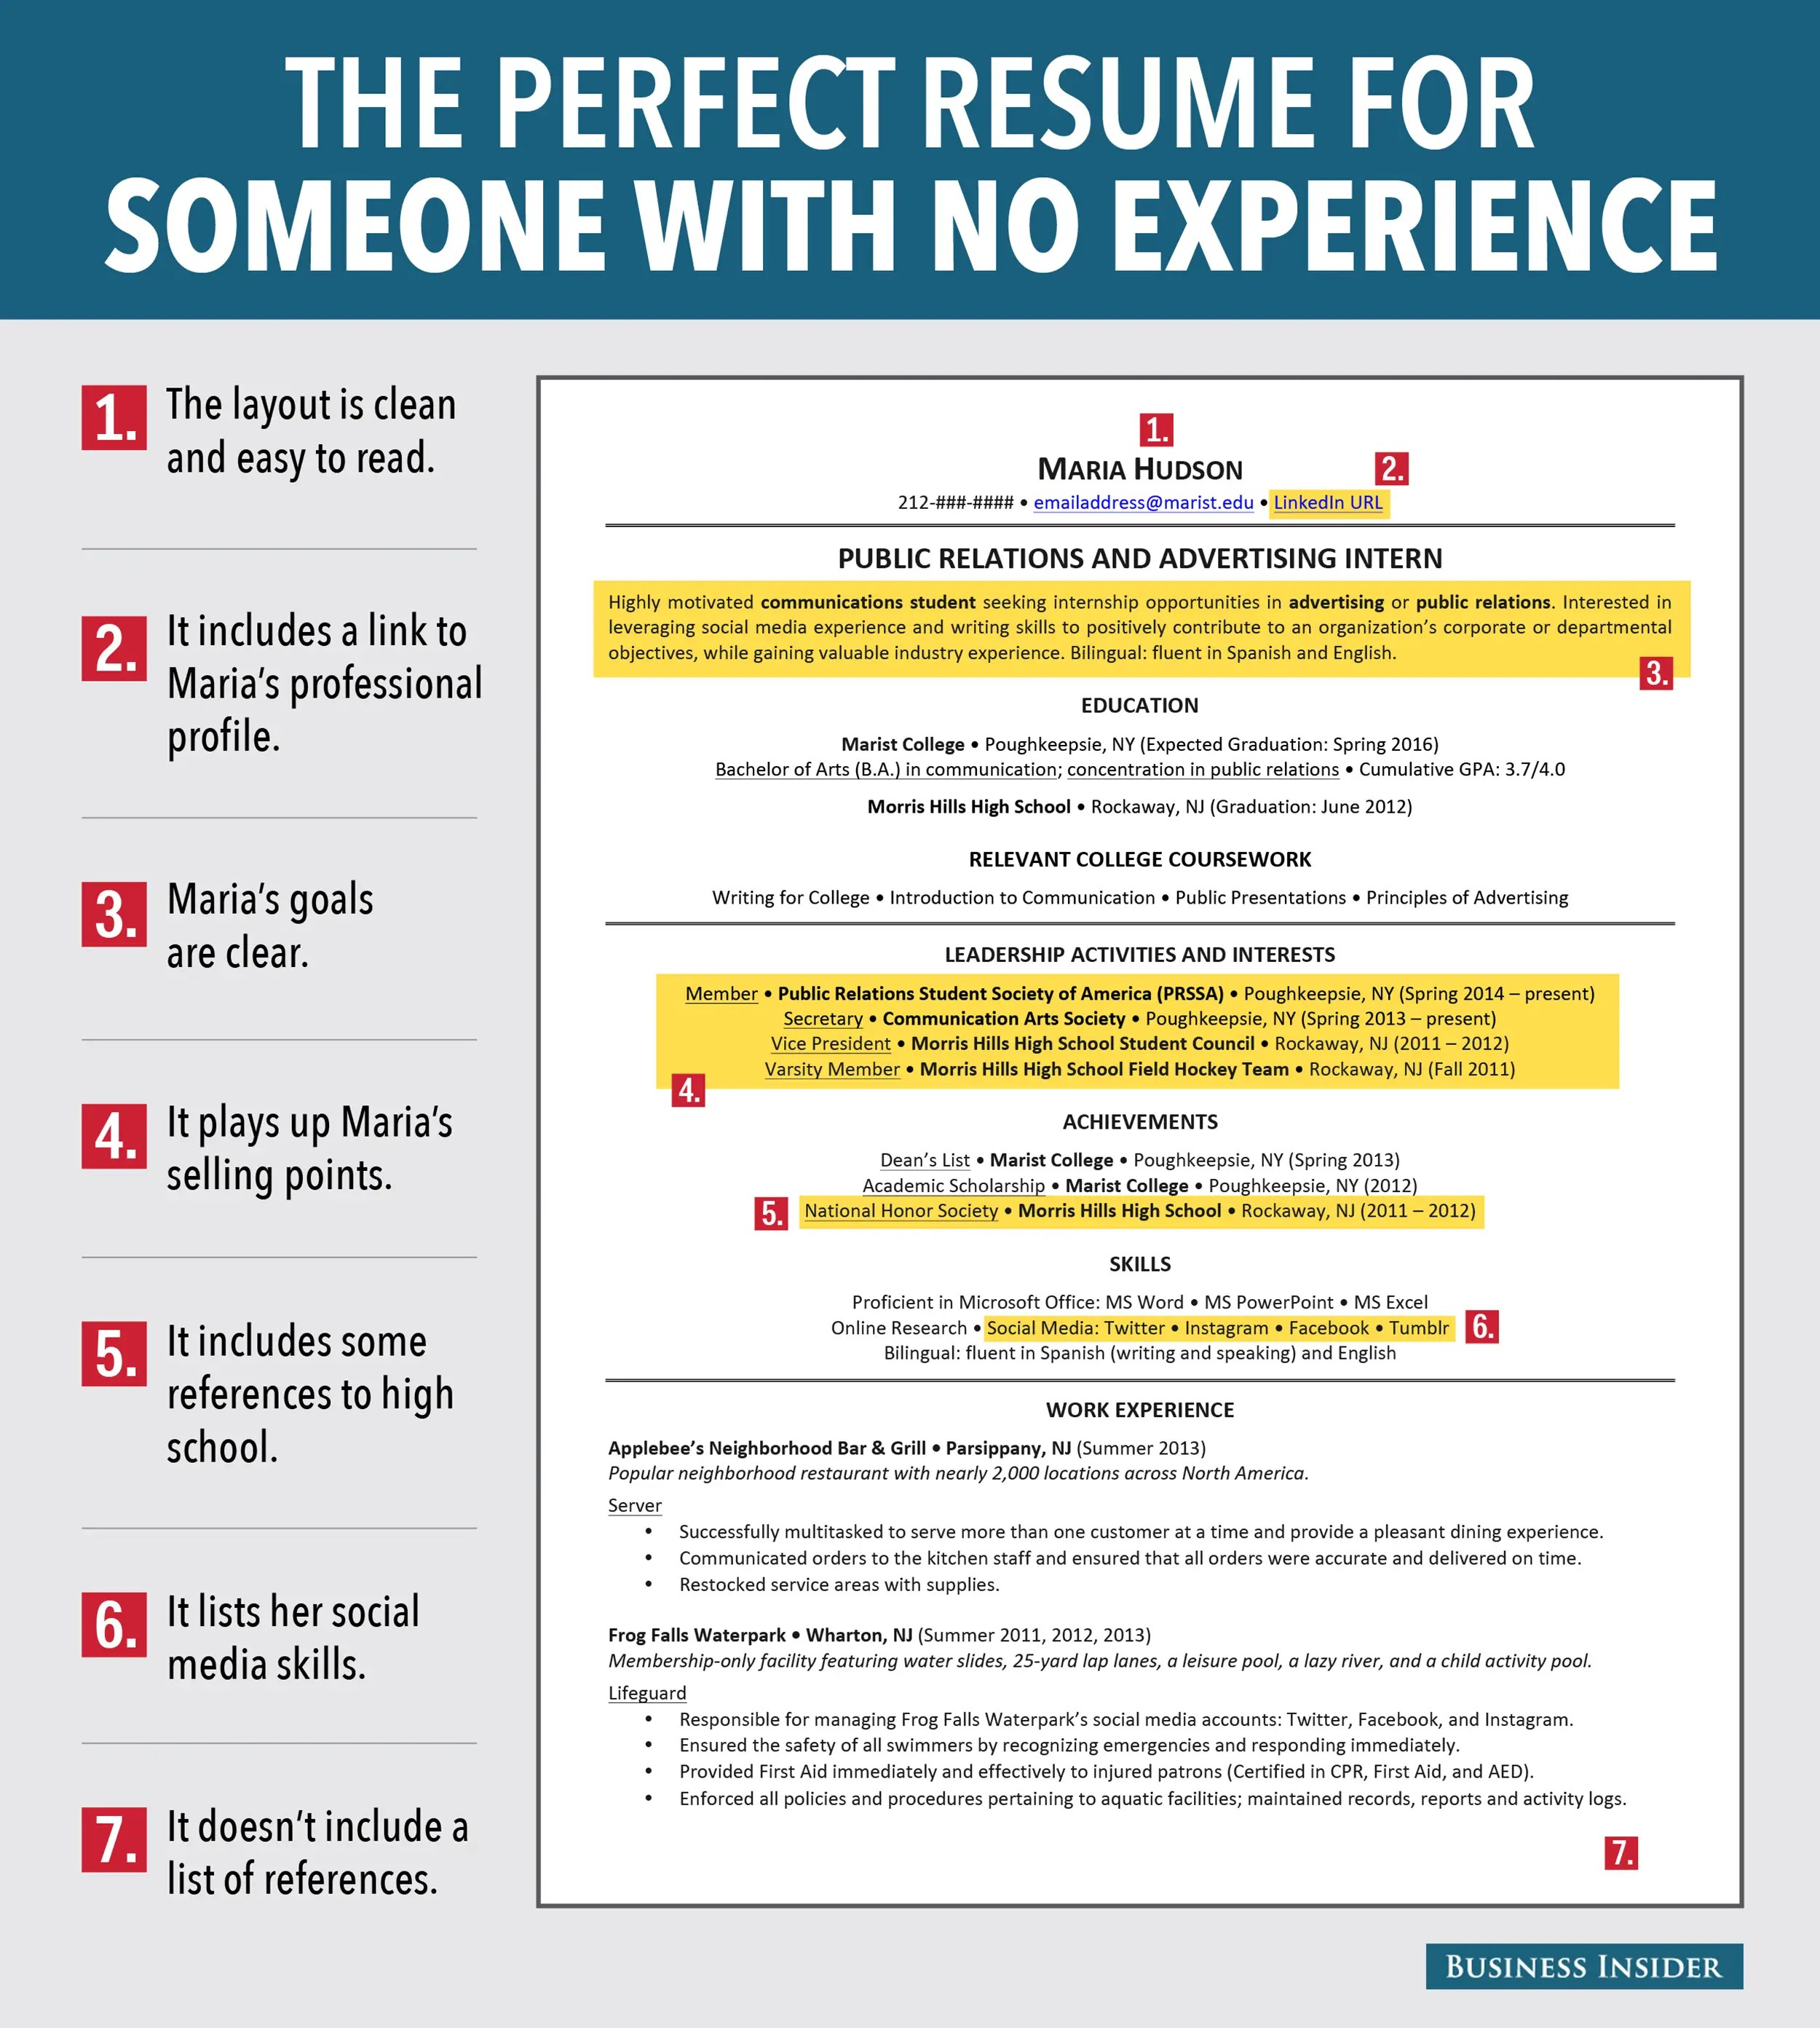 Resume For Job Seeker With No Experience - Business Insider - First Job Resume No Experience